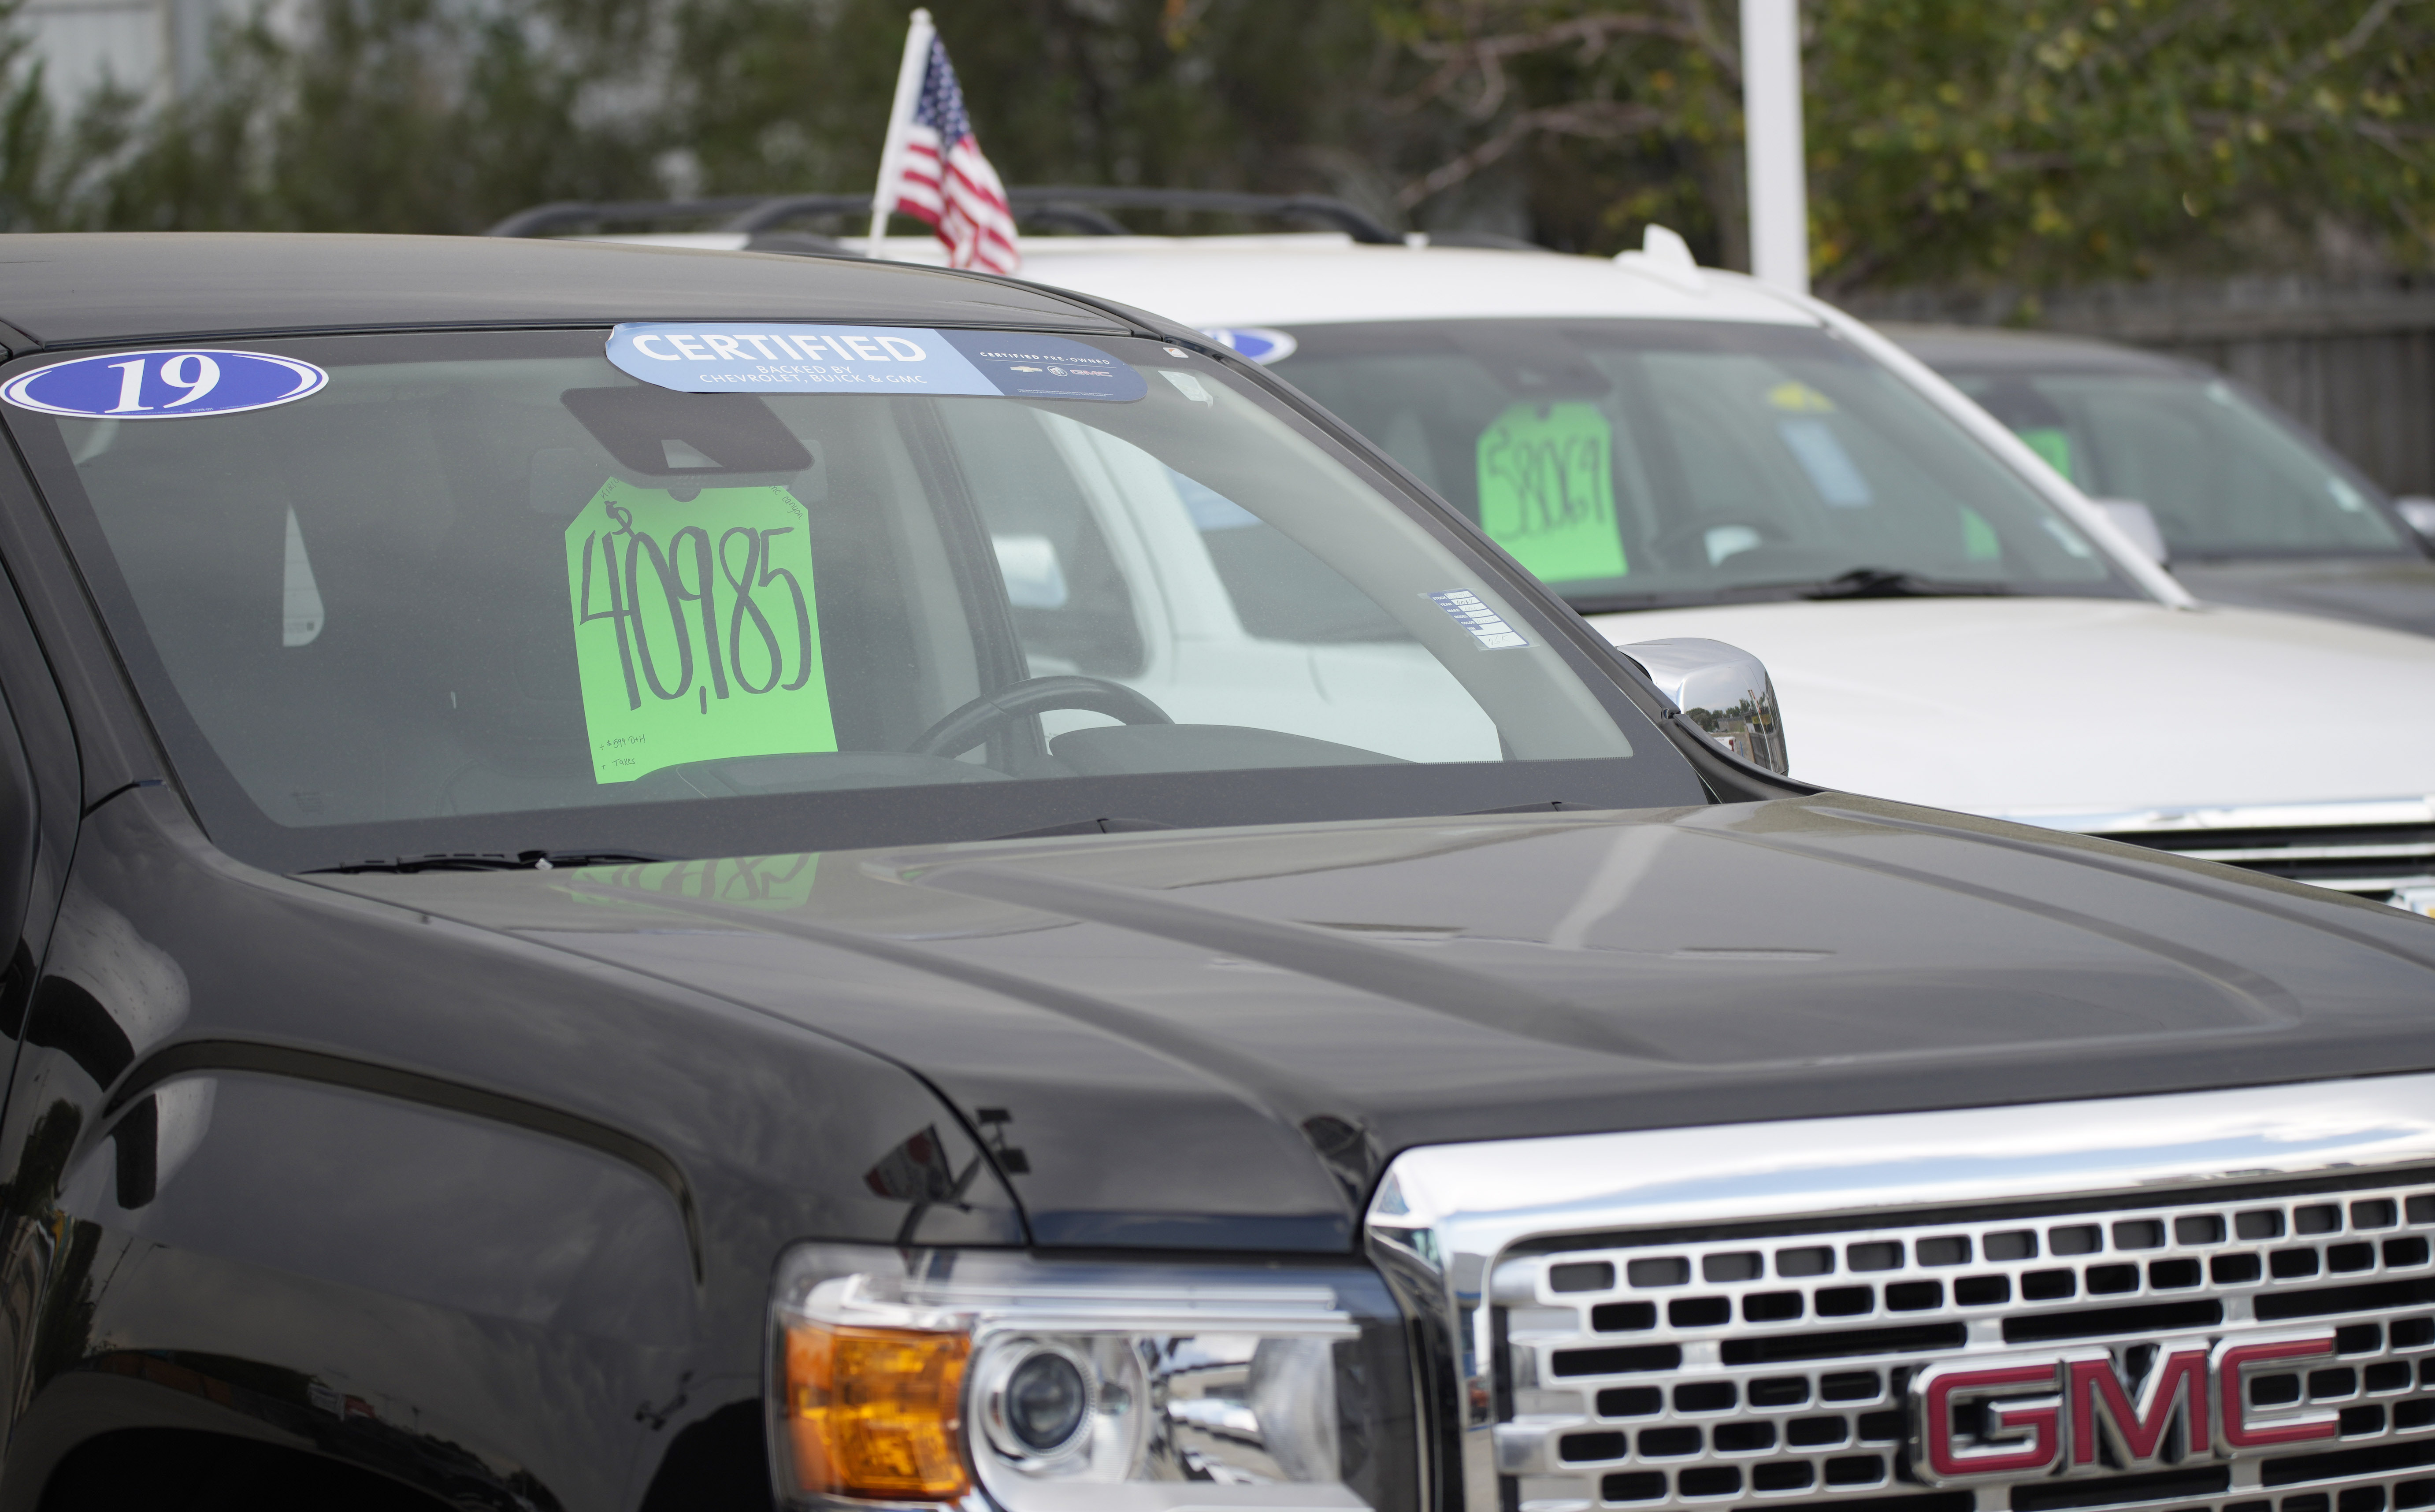 The price for a used 2019 GMC pickup truck is displayed in the windshield of the vehicle at Chevrolet dealership in Colorado.